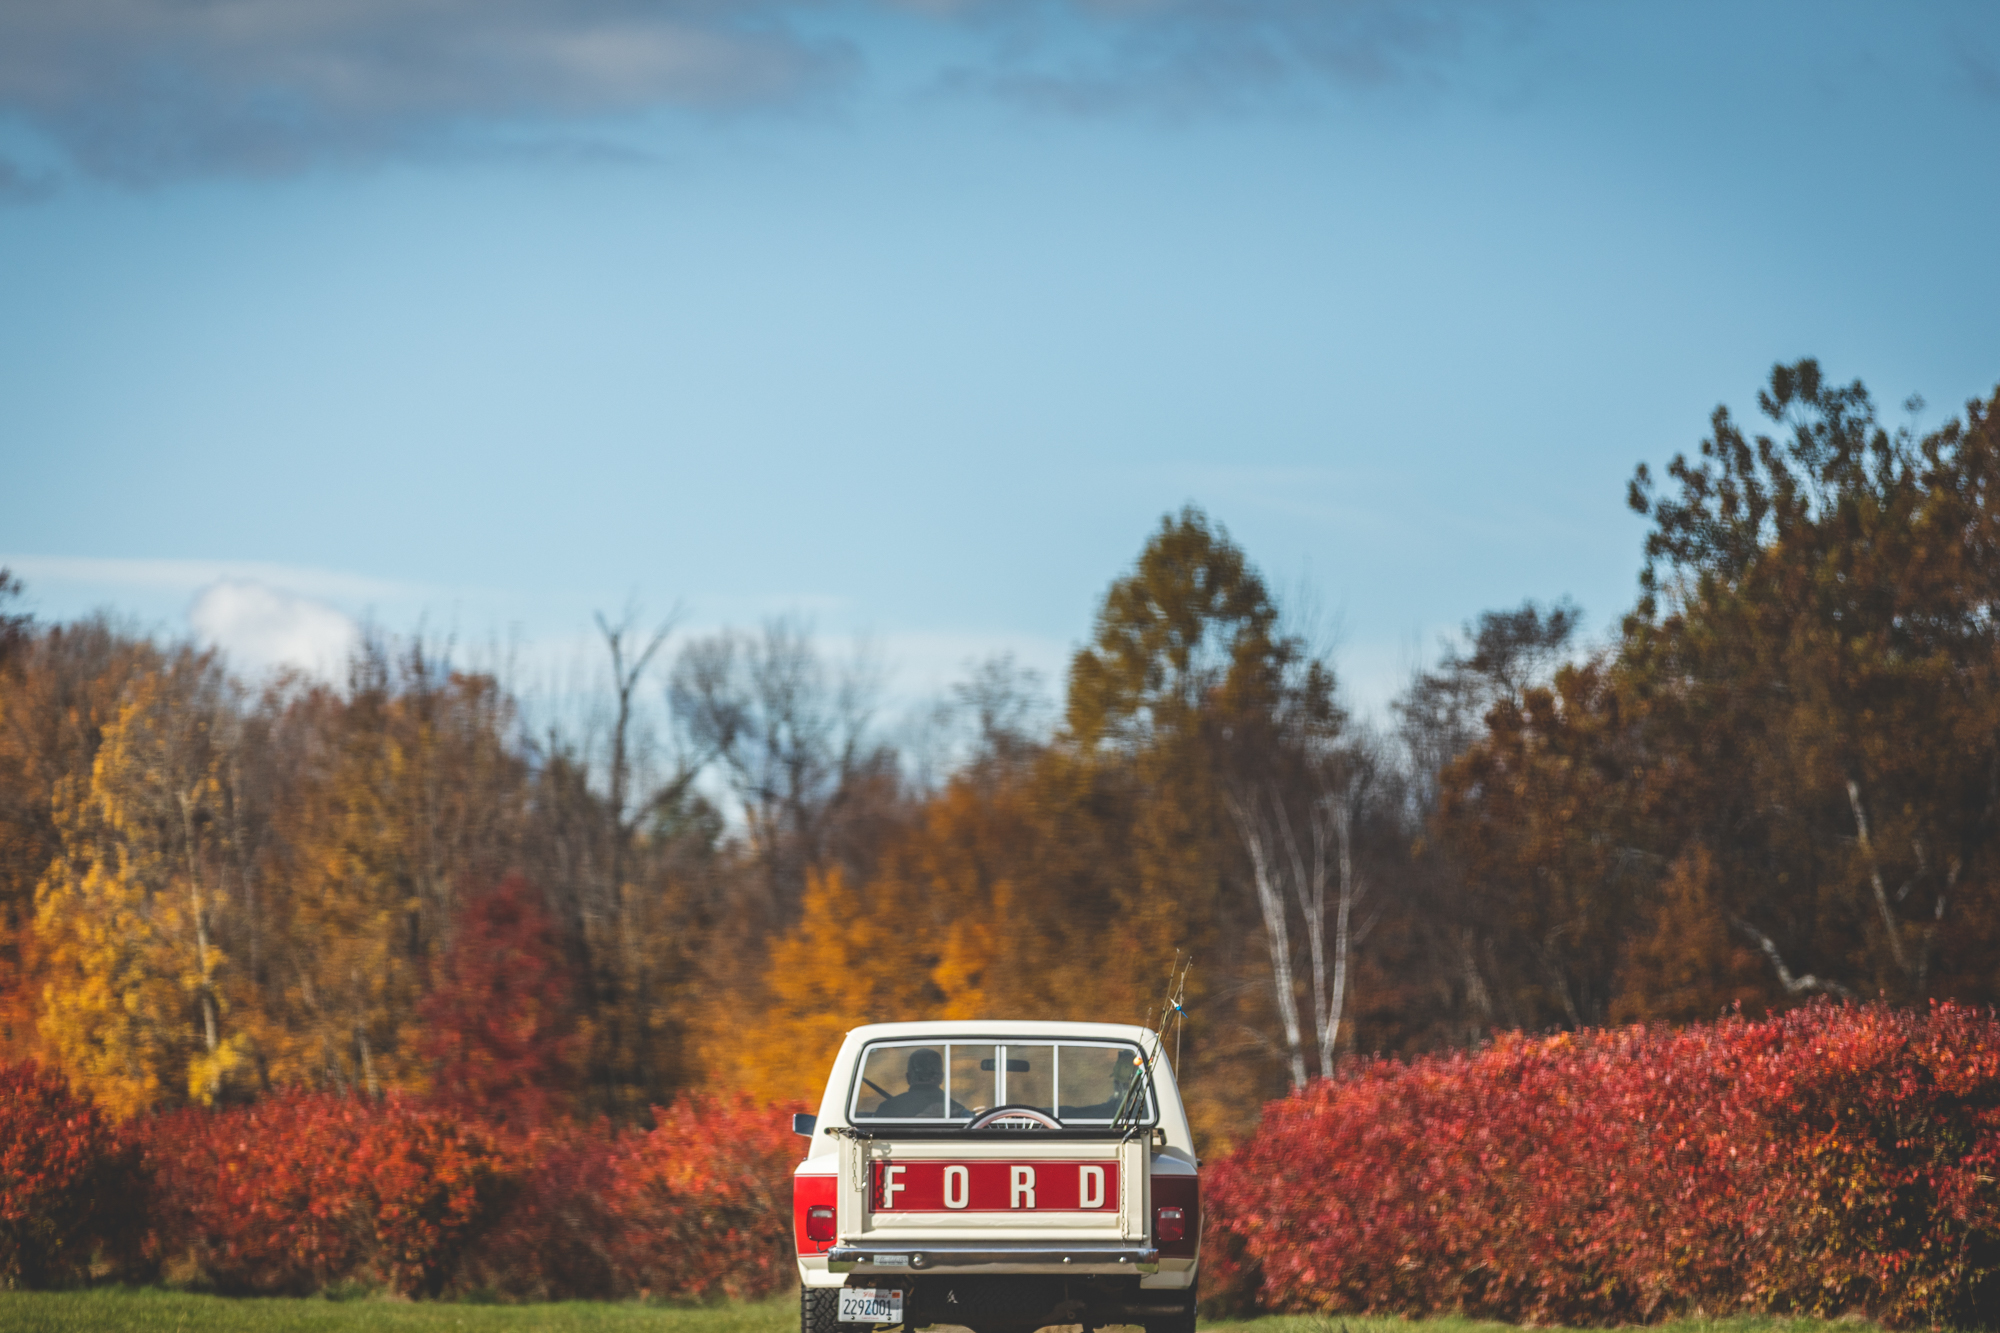 ford-truck-in-blueberry-fields.jpg